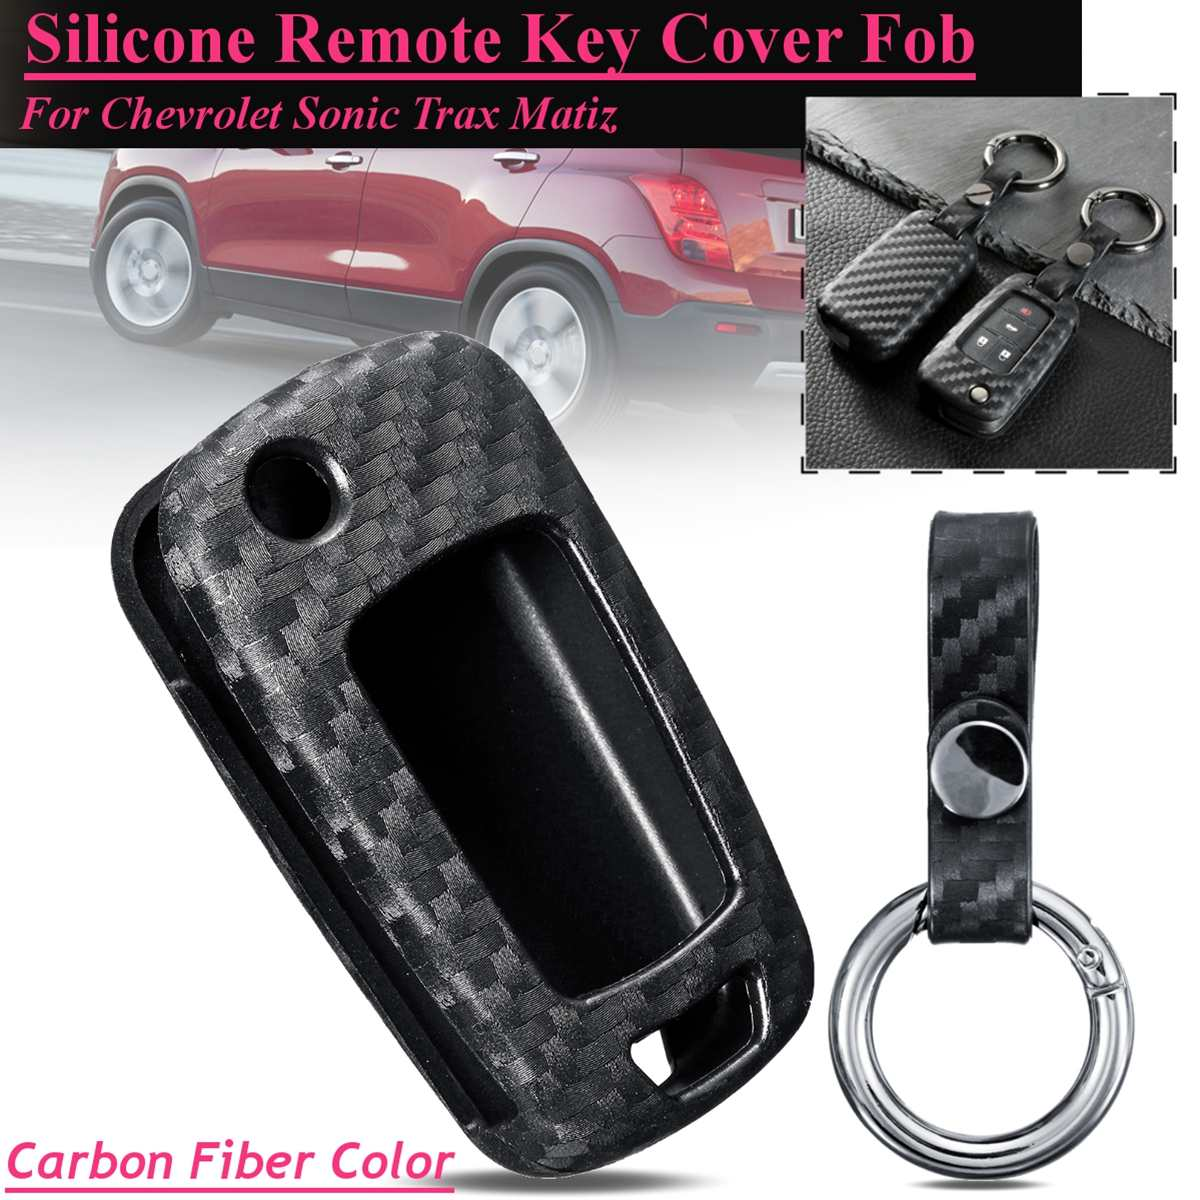 Car Styling Carbon Fiber Car Remote Smart Key Case Cover For Chevrolet Camaro Cruze Equinox Malibu Sonic Spark Volt Key Case Big Clearance Sale Key Case For Car